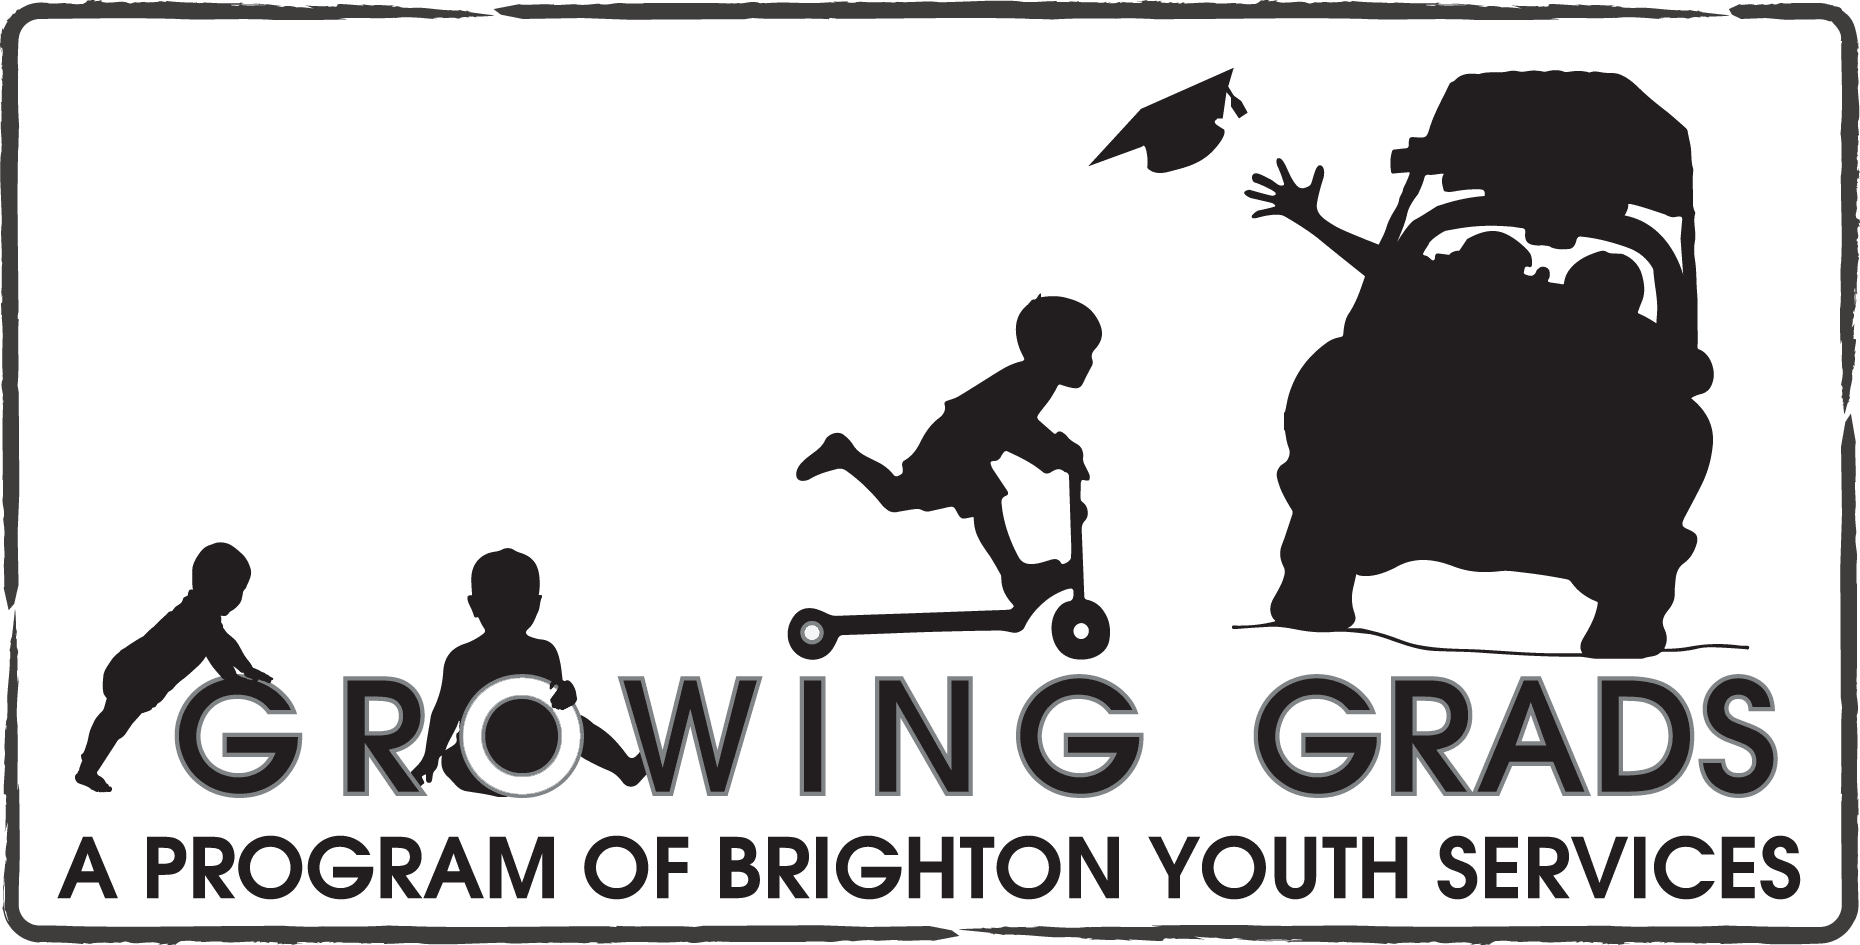 GrowingGrads_Logo_Art_Black